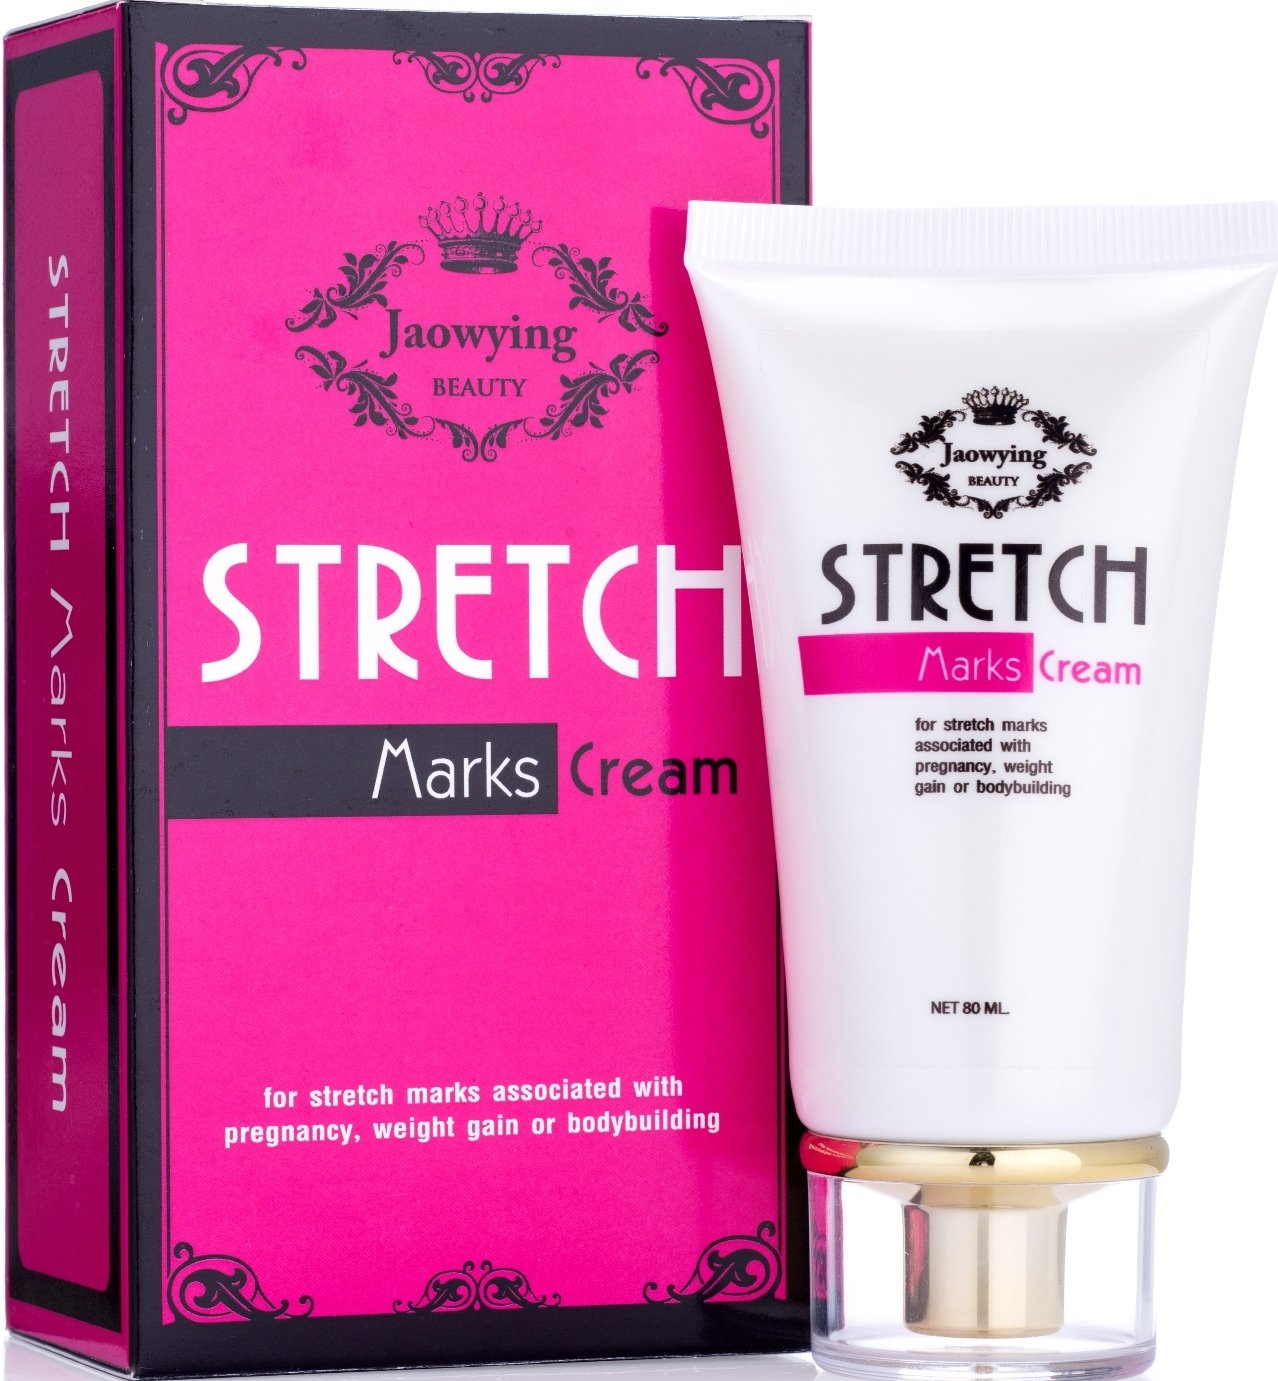 Stretch Mark Remover Cream - Safe Stretch Marks Removal Cream with Snail Secretion Filtrate, Tightens Loose Skin & Heals Stretch Marks Caused by Pregnancy, Weight Gain, Bodybuilding - NET 2.82 Oz. (80 G.)